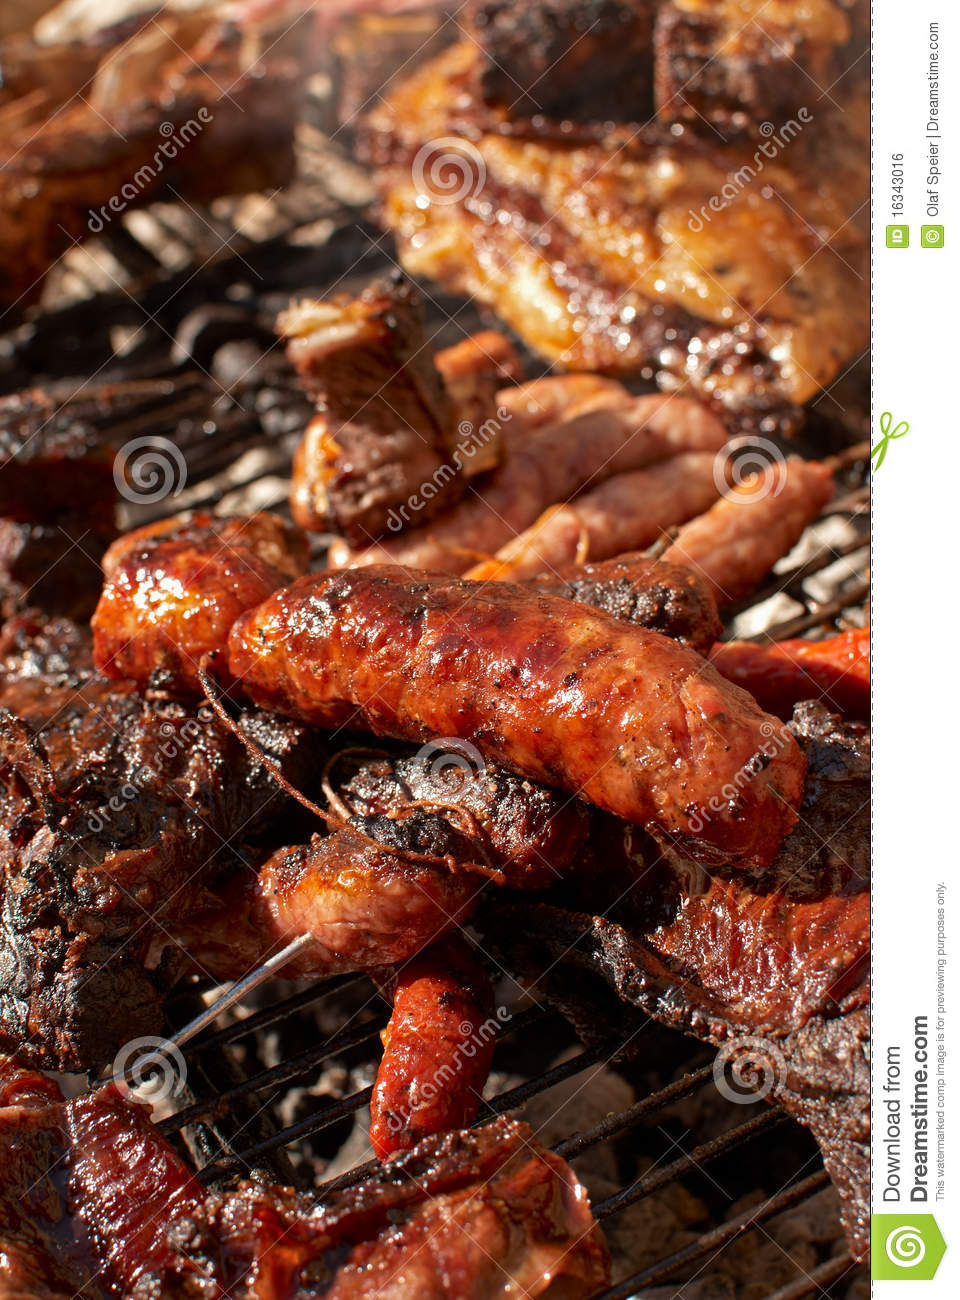 Argentinian barbecue royalty free stock image image - Barbecue argentin ...